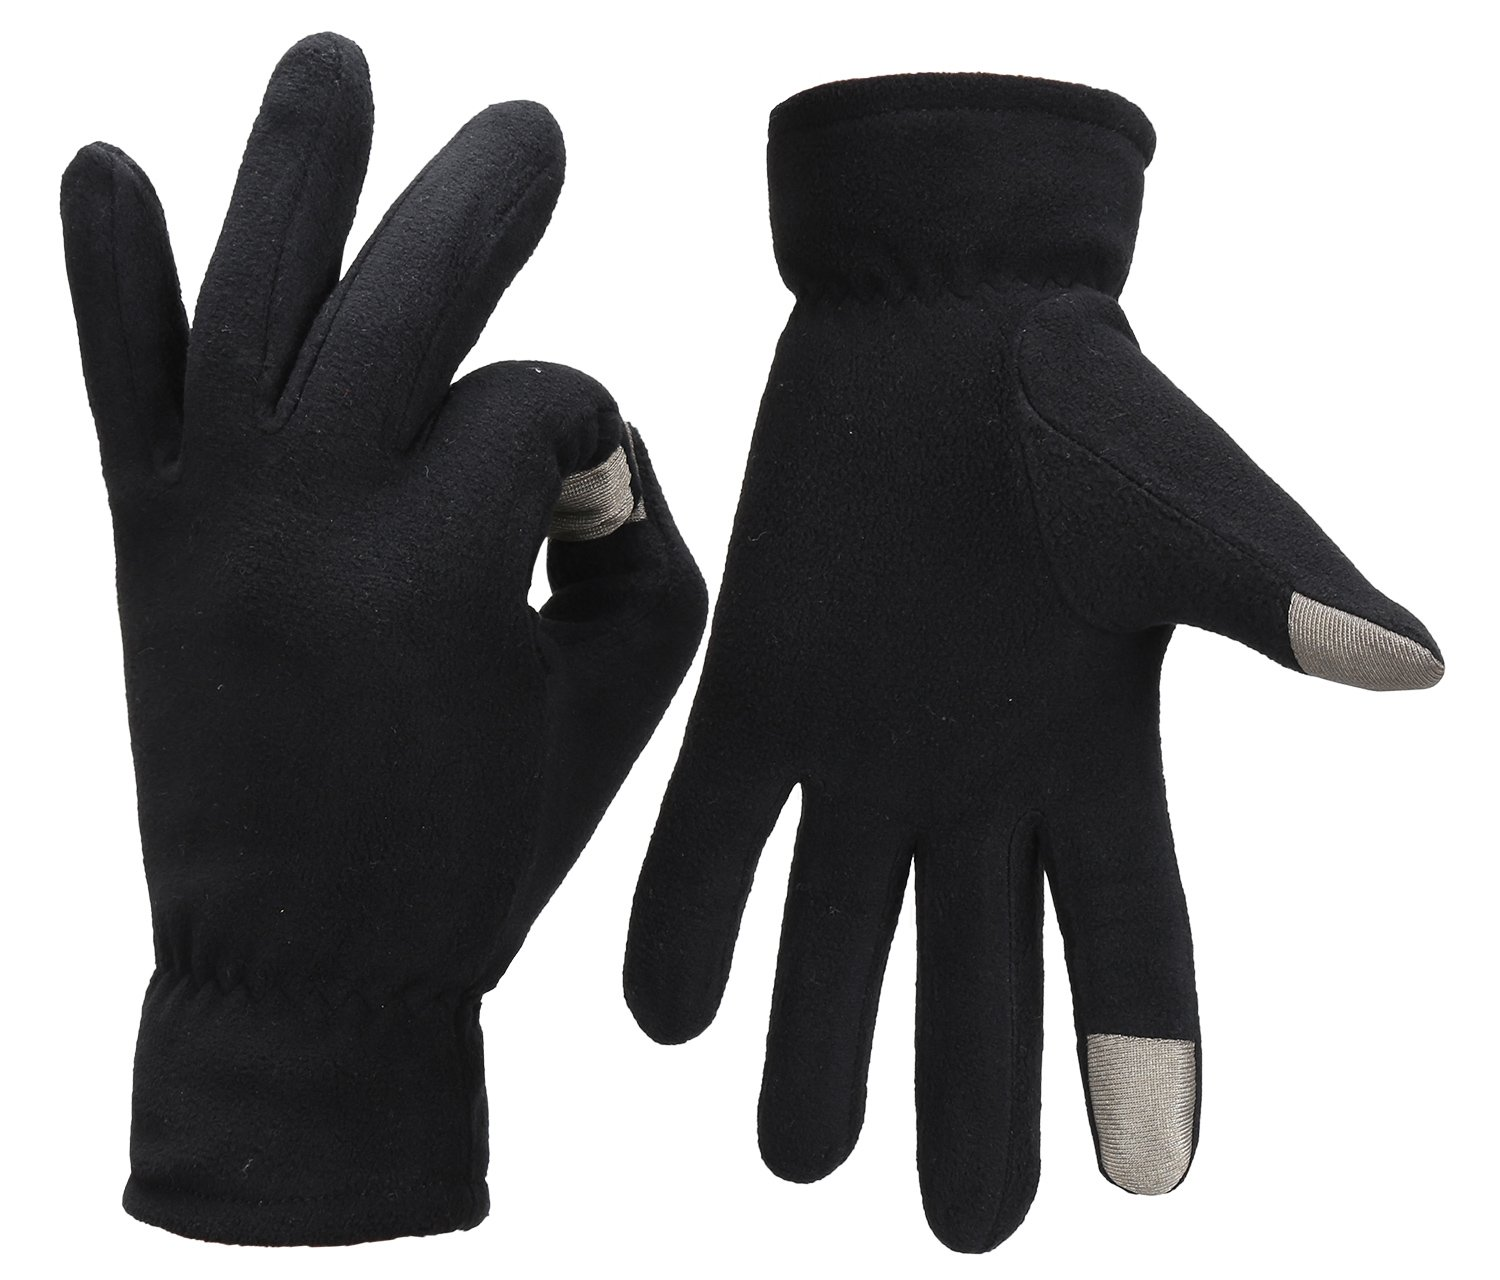 Fantastic Zone Winter Warm Fur Touch Screen Gloves for Men, Cold Weather Windproof Thermal Men Gloves for Smartphone Texting,Cycling,Riding,Running,Skiing,Outdoor Sports